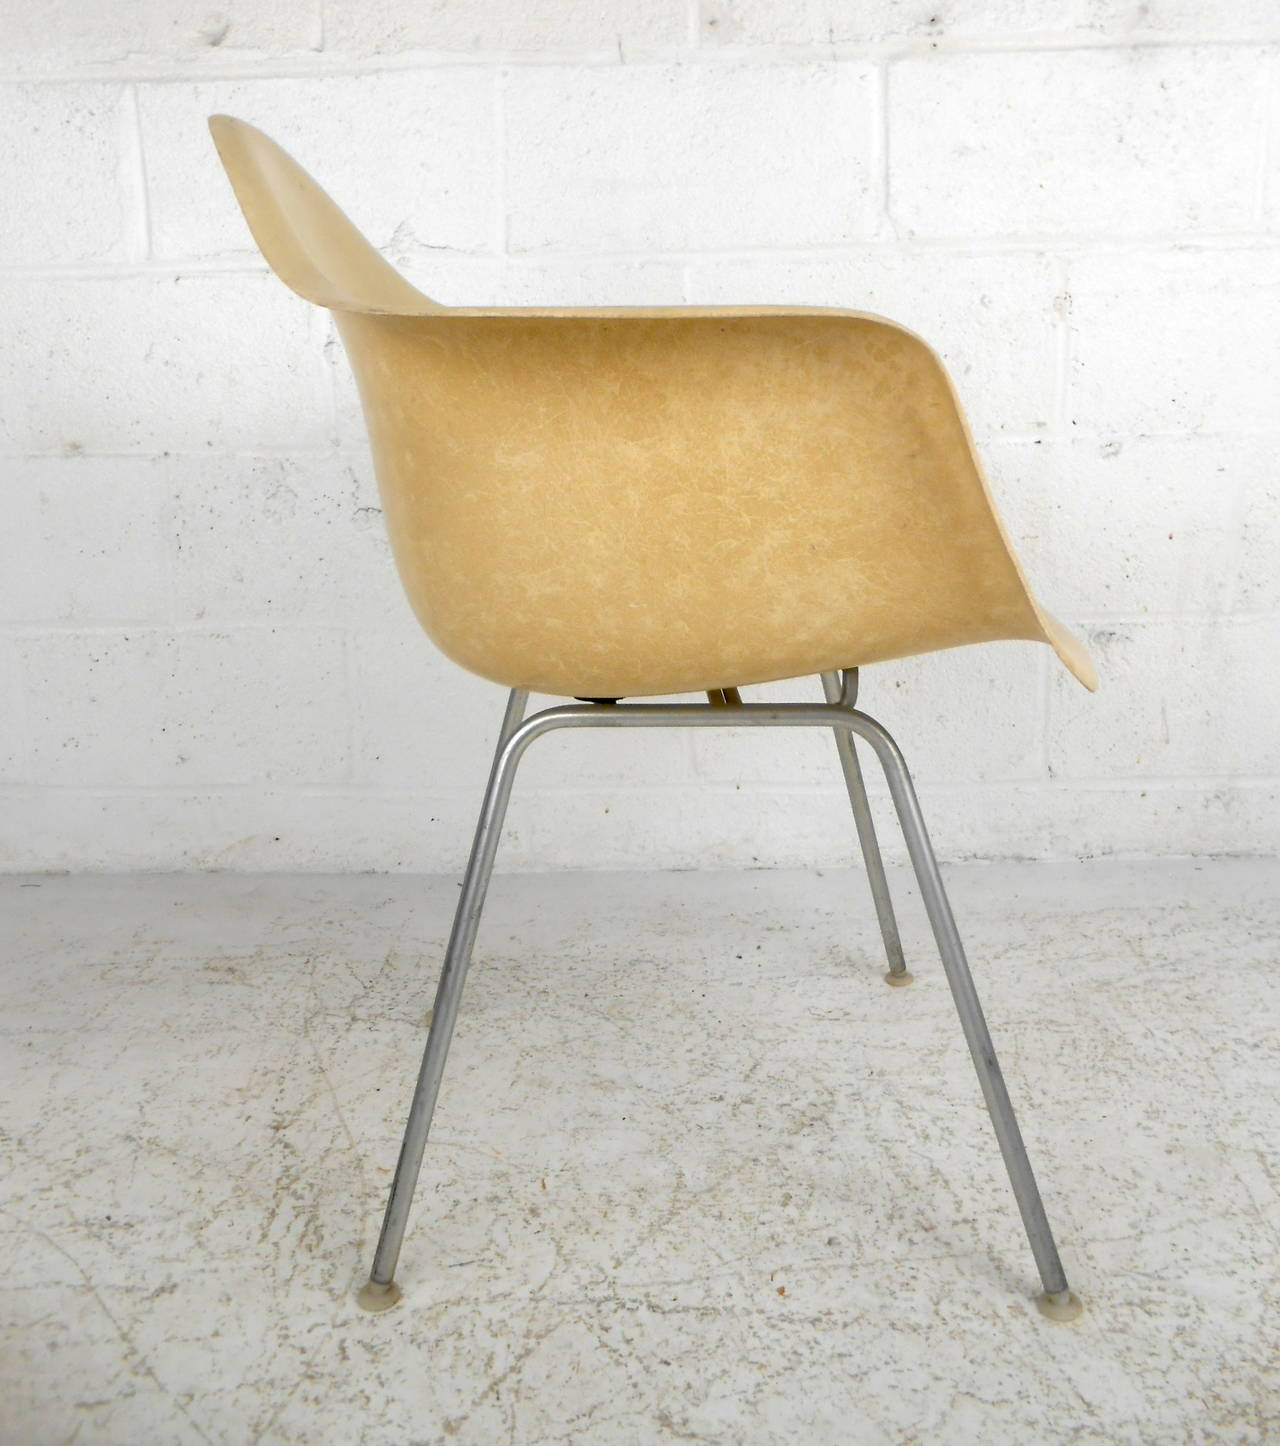 Herman miller chair - Mid Century Modern Fiberglass Shell Chair By Eames For Herman Miller 3